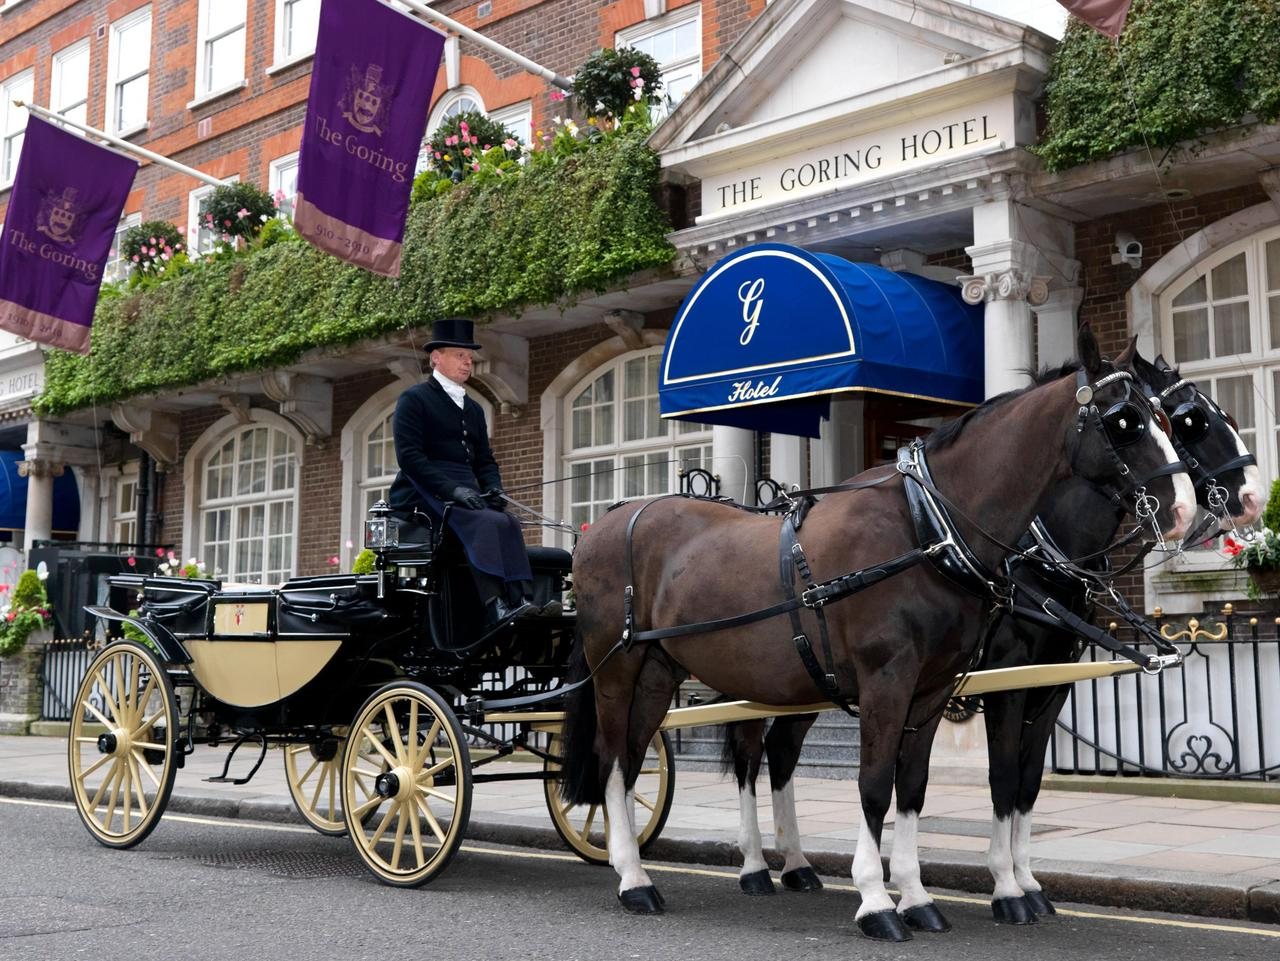 Horse-drawn carriage outside The Goring Hotel in London, where the Duchess of Cambridge spent her last night as single woman Kate Middleton.